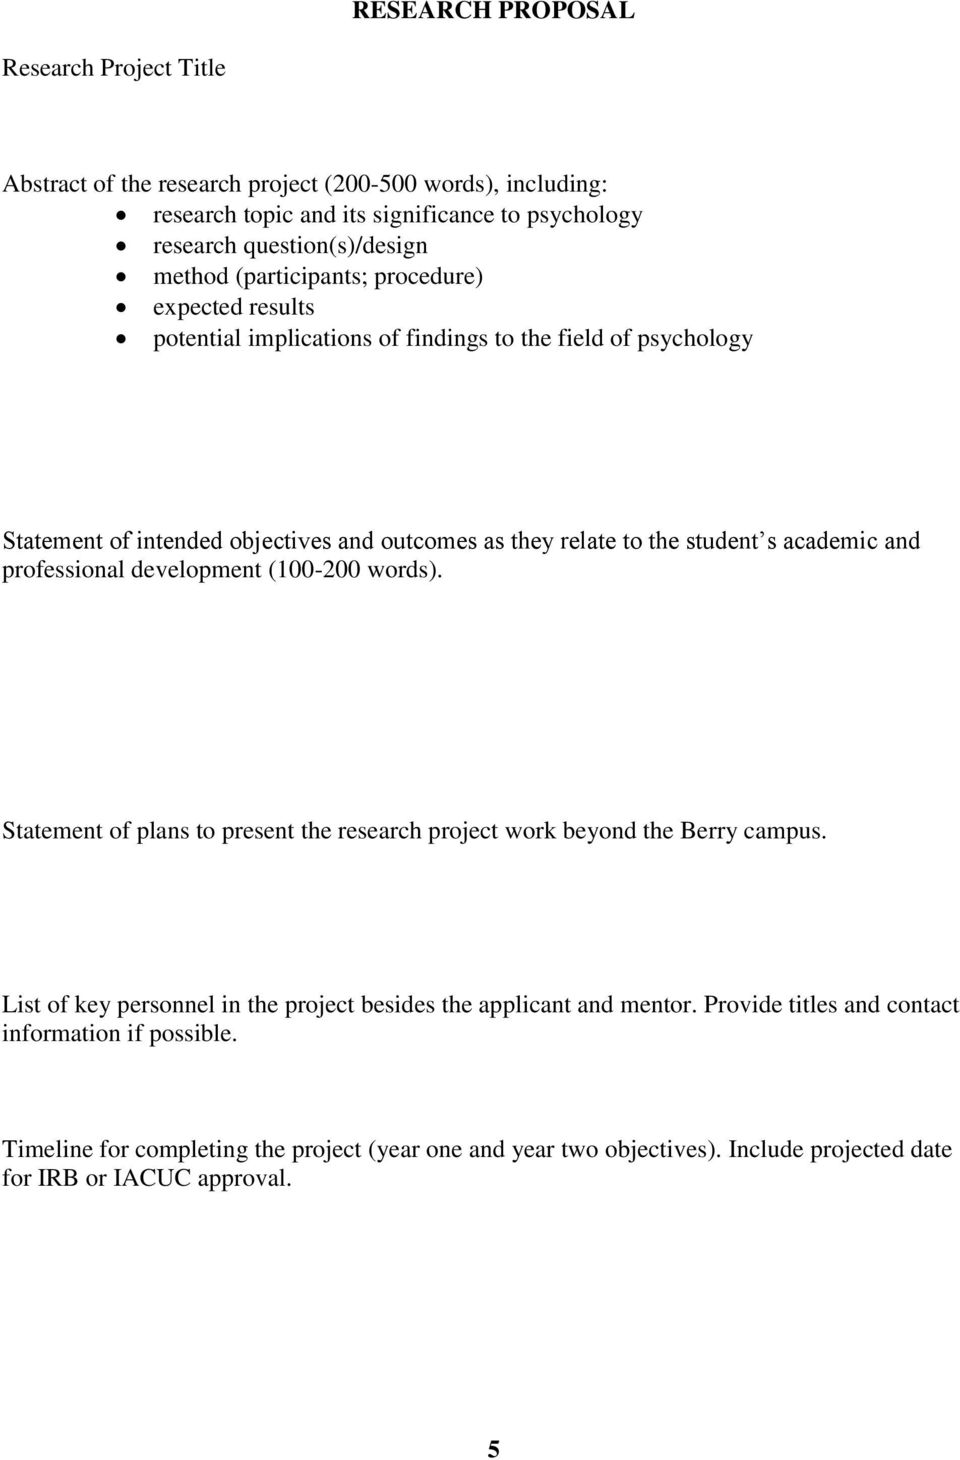 academic and professional development (100-200 words). Statement of plans to present the research project work beyond the Berry campus.